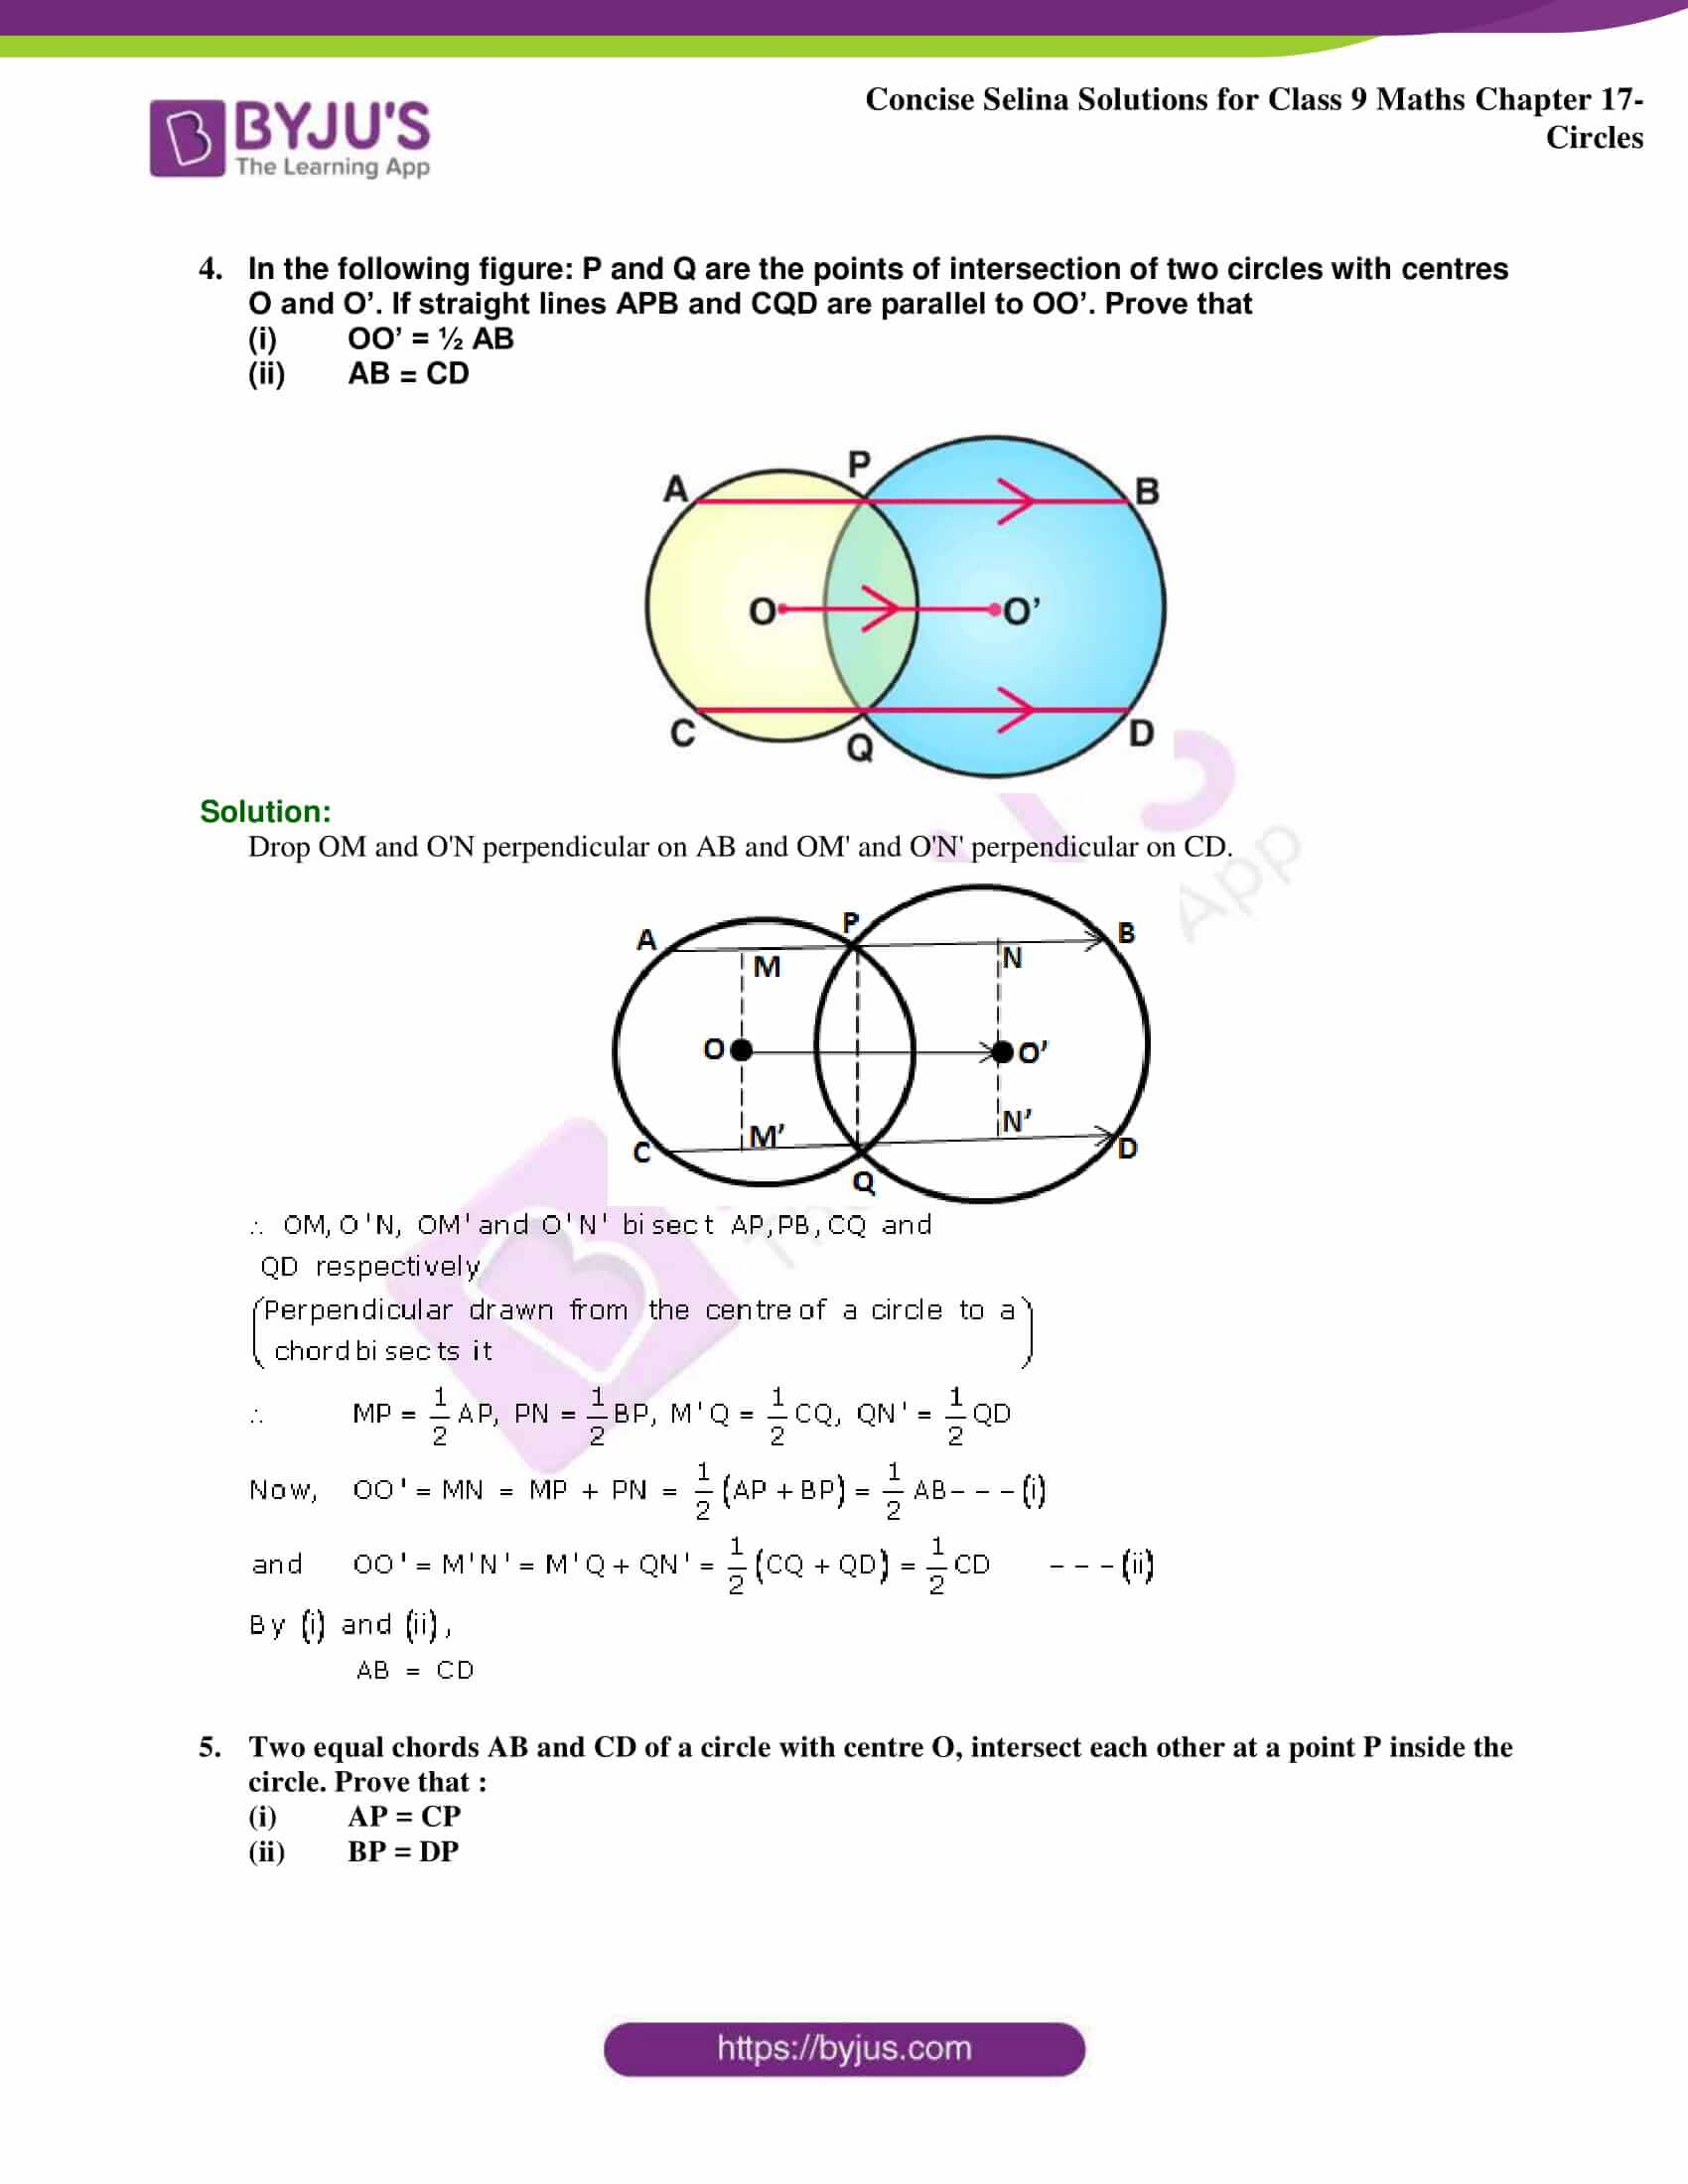 Concise Selina Solutions Class 9 Maths Chapter 17 Circles part 12